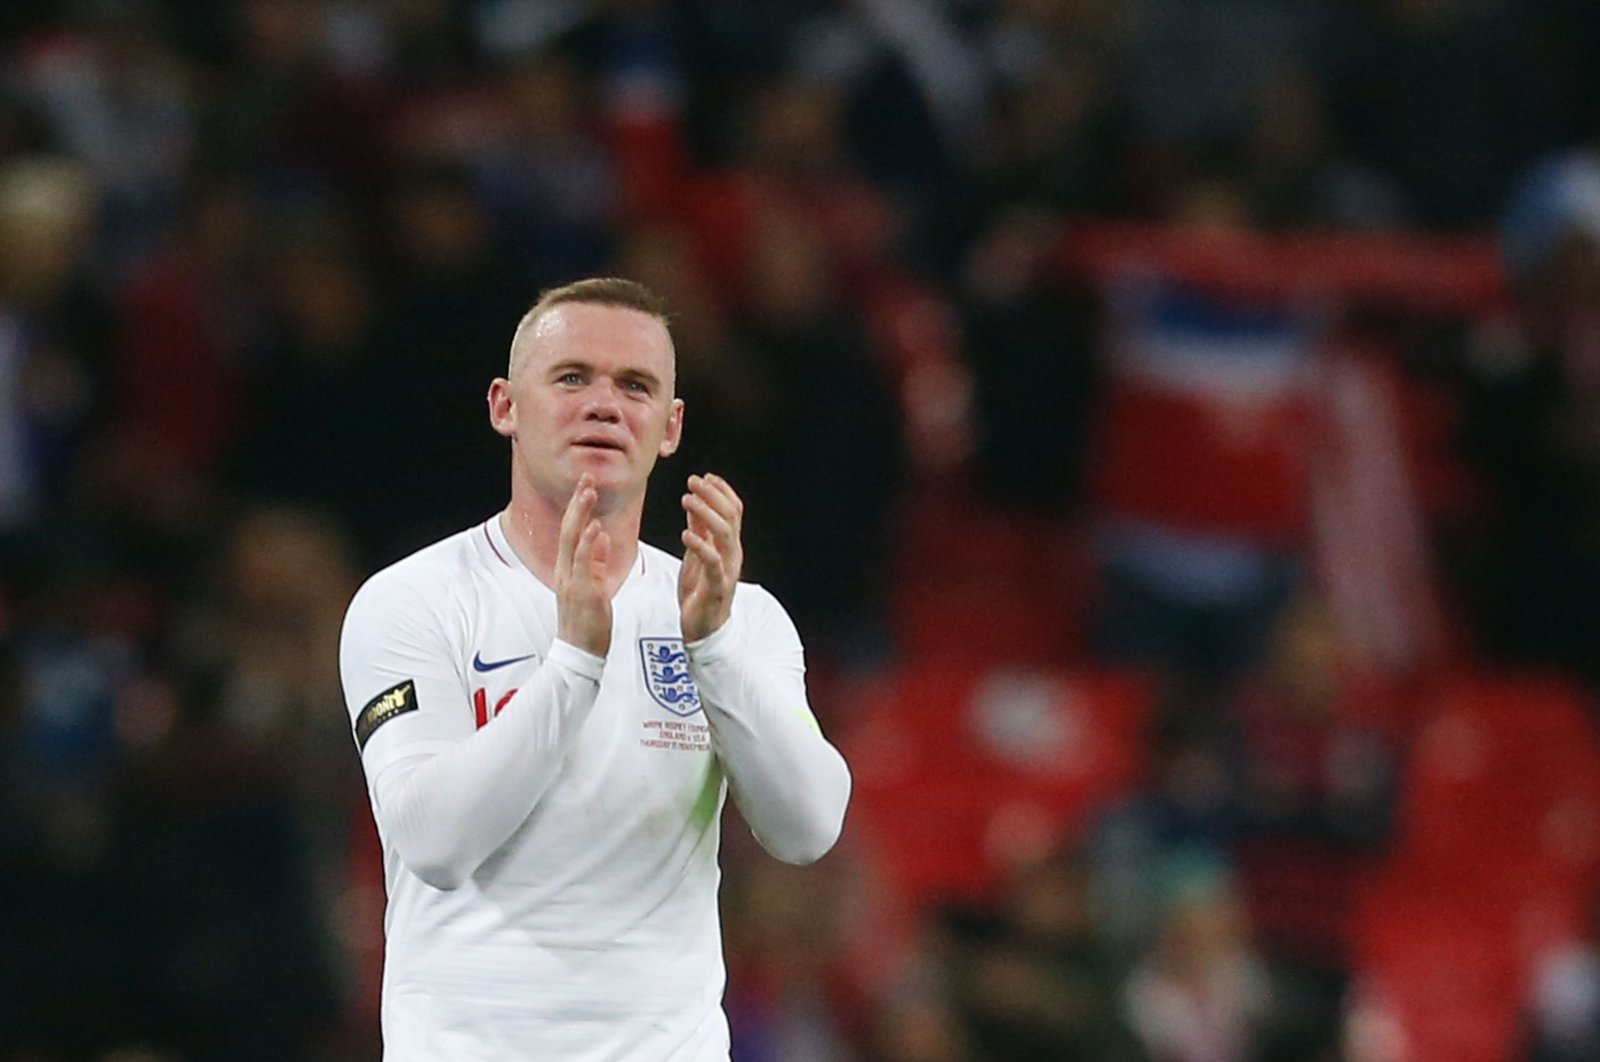 England's striker Wayne Rooney applauds after the final whistle during the international friendly football match between England and the United States at Wembley stadium in north London, Nov. 15, 2018. (AFP Photo)